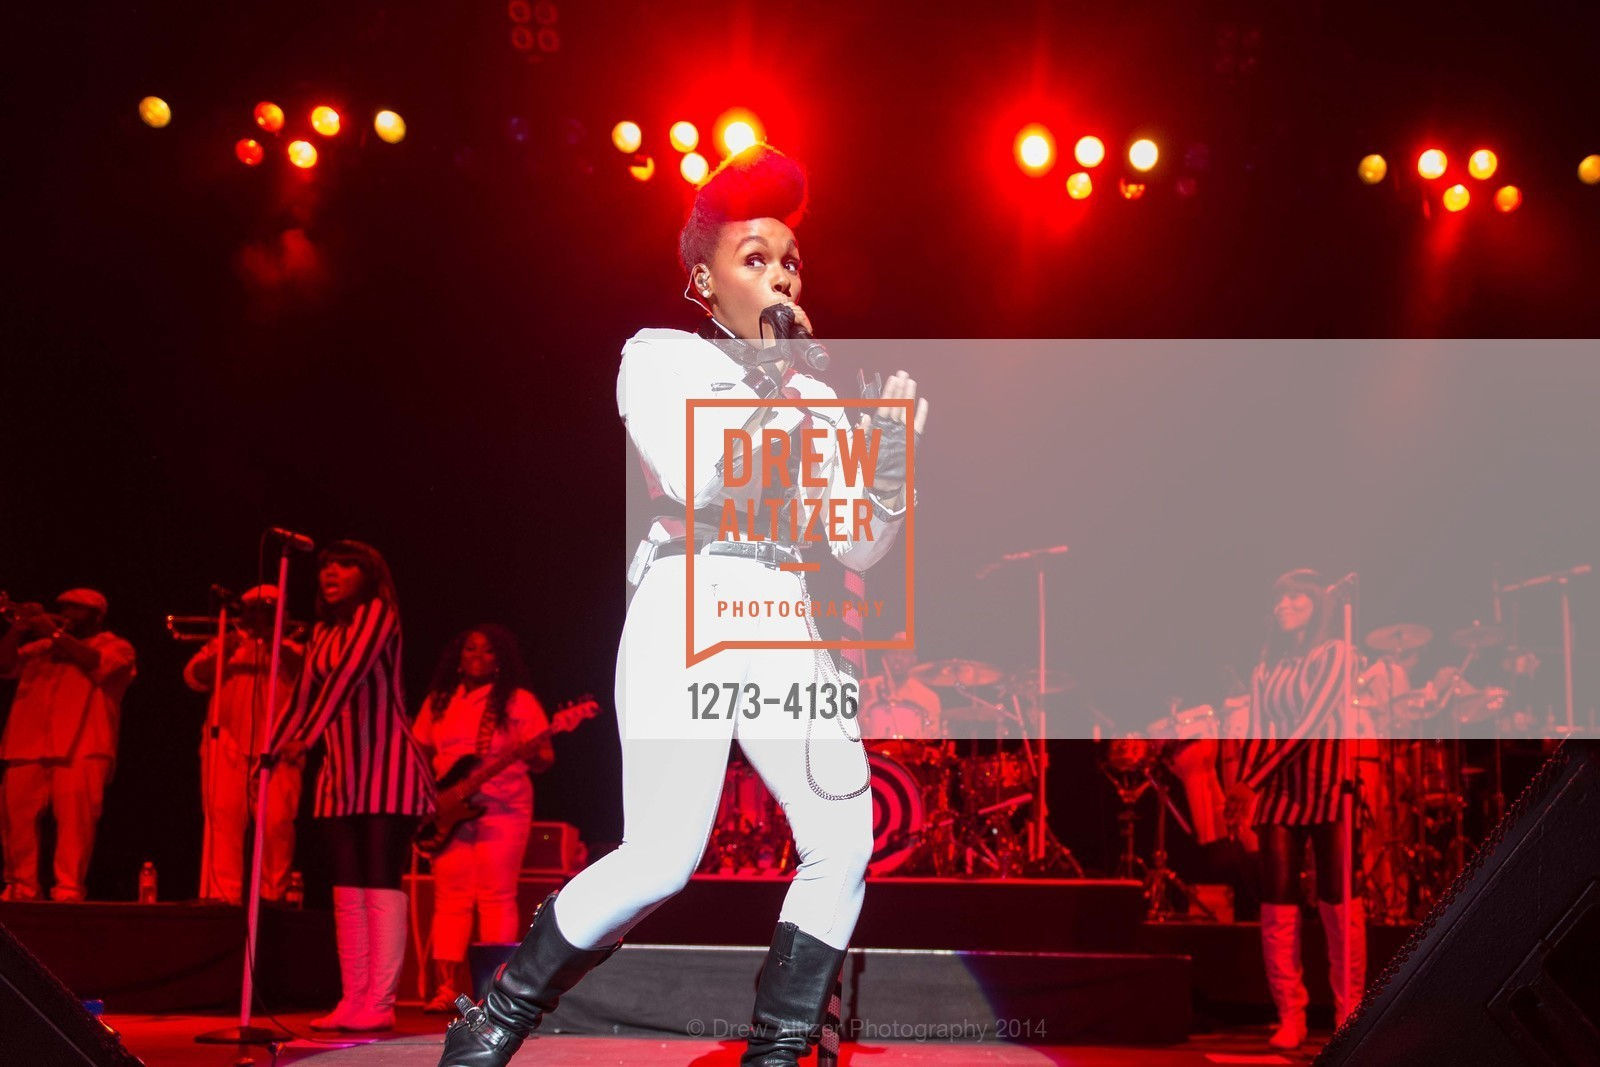 Performance By Janelle Monae, Photo #1273-4136